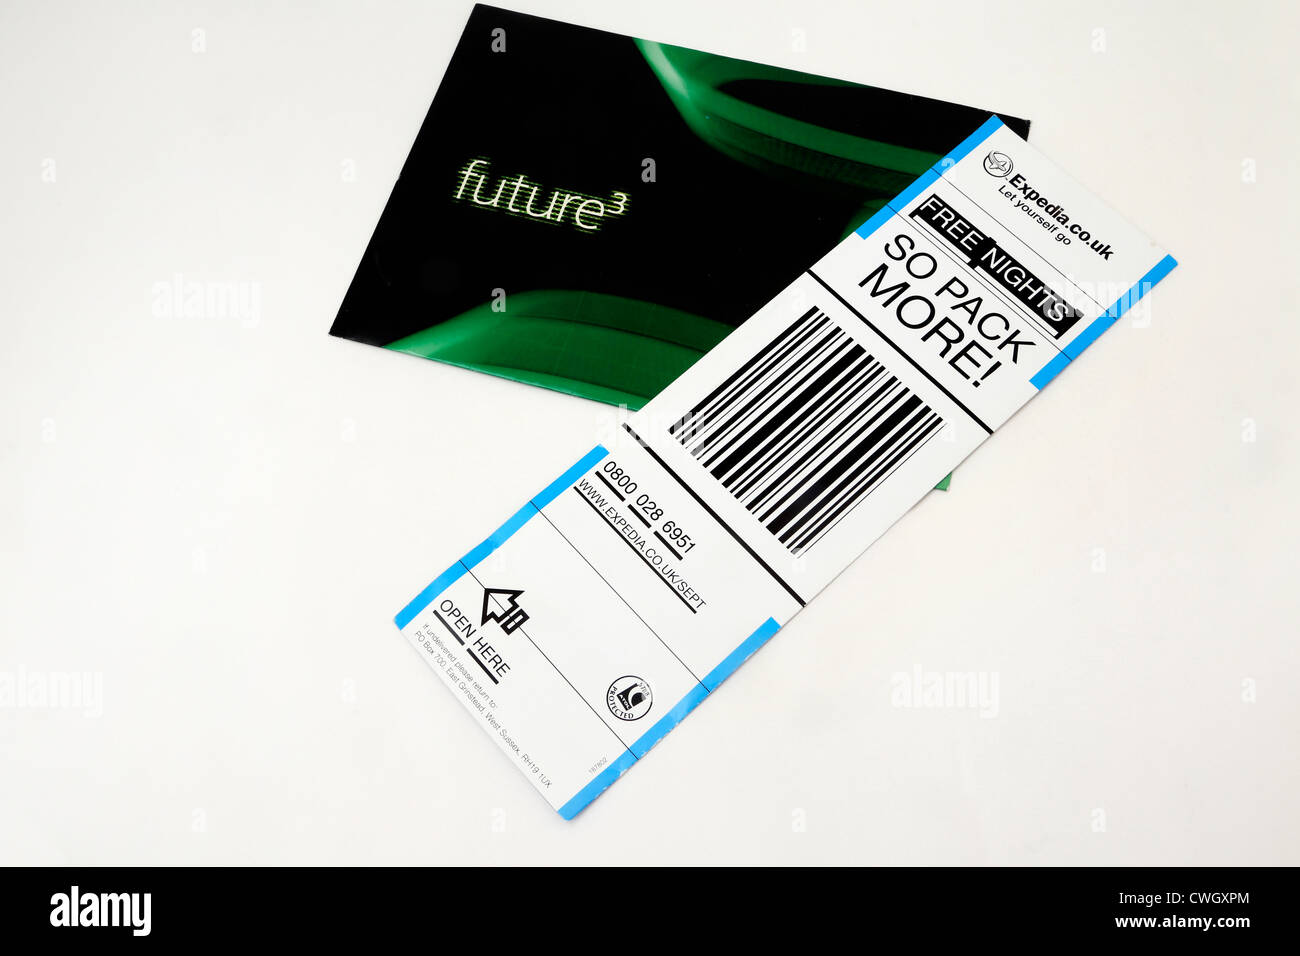 Leaflets For Future3 And Expedia - Stock Image